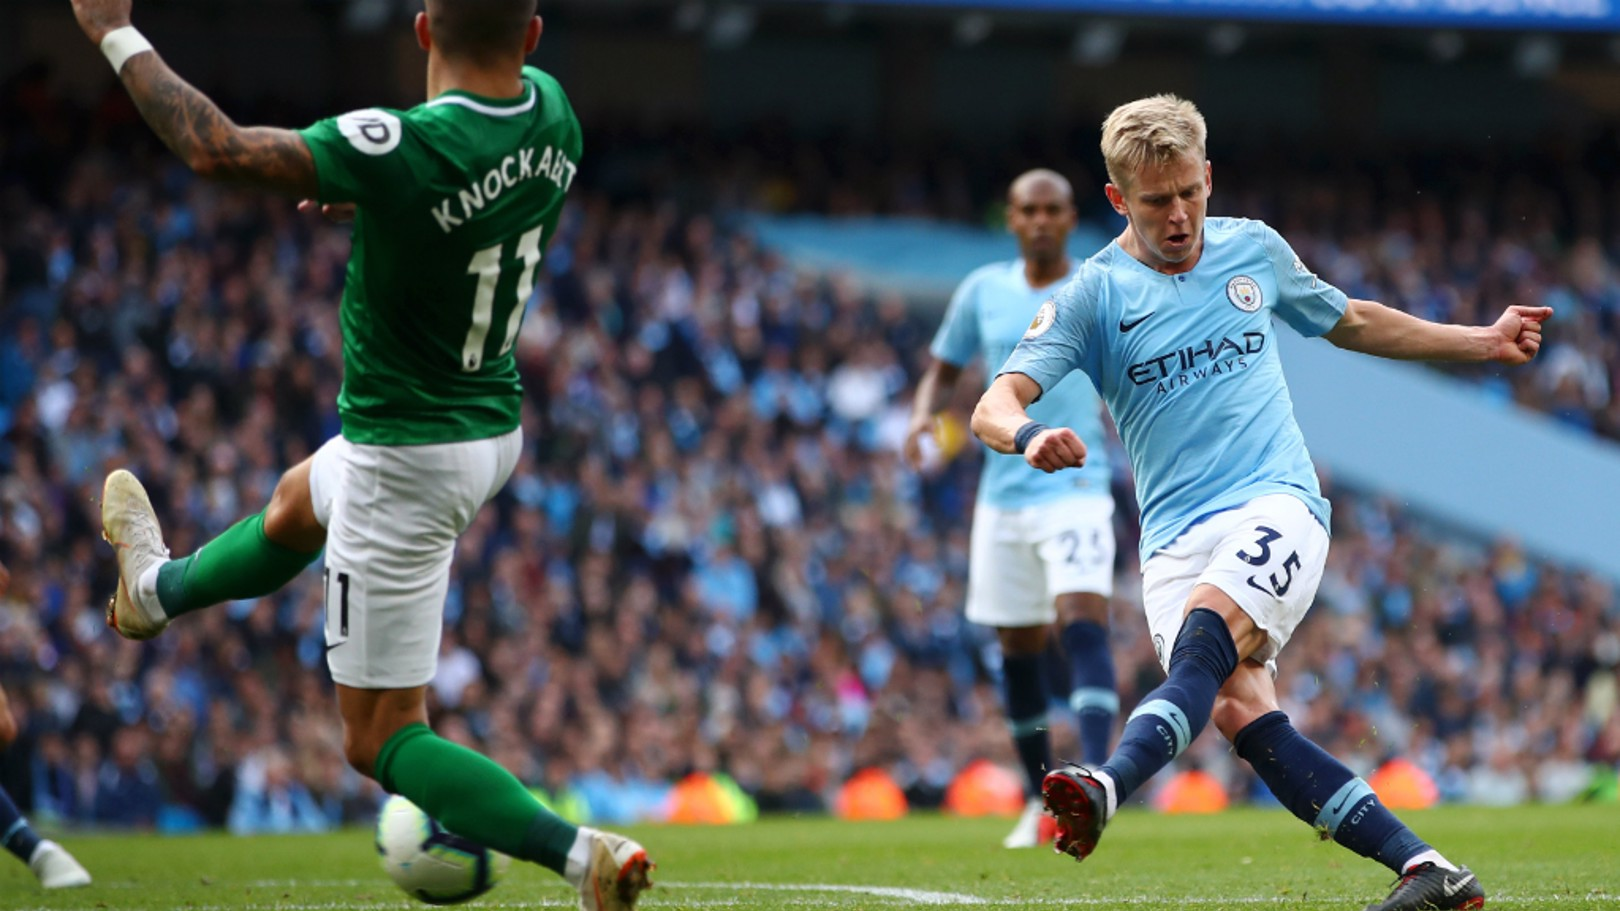 ZINC METTLE: Oleks Zinchenko hailed Pep Guardiola, following City's triumph over Brighton